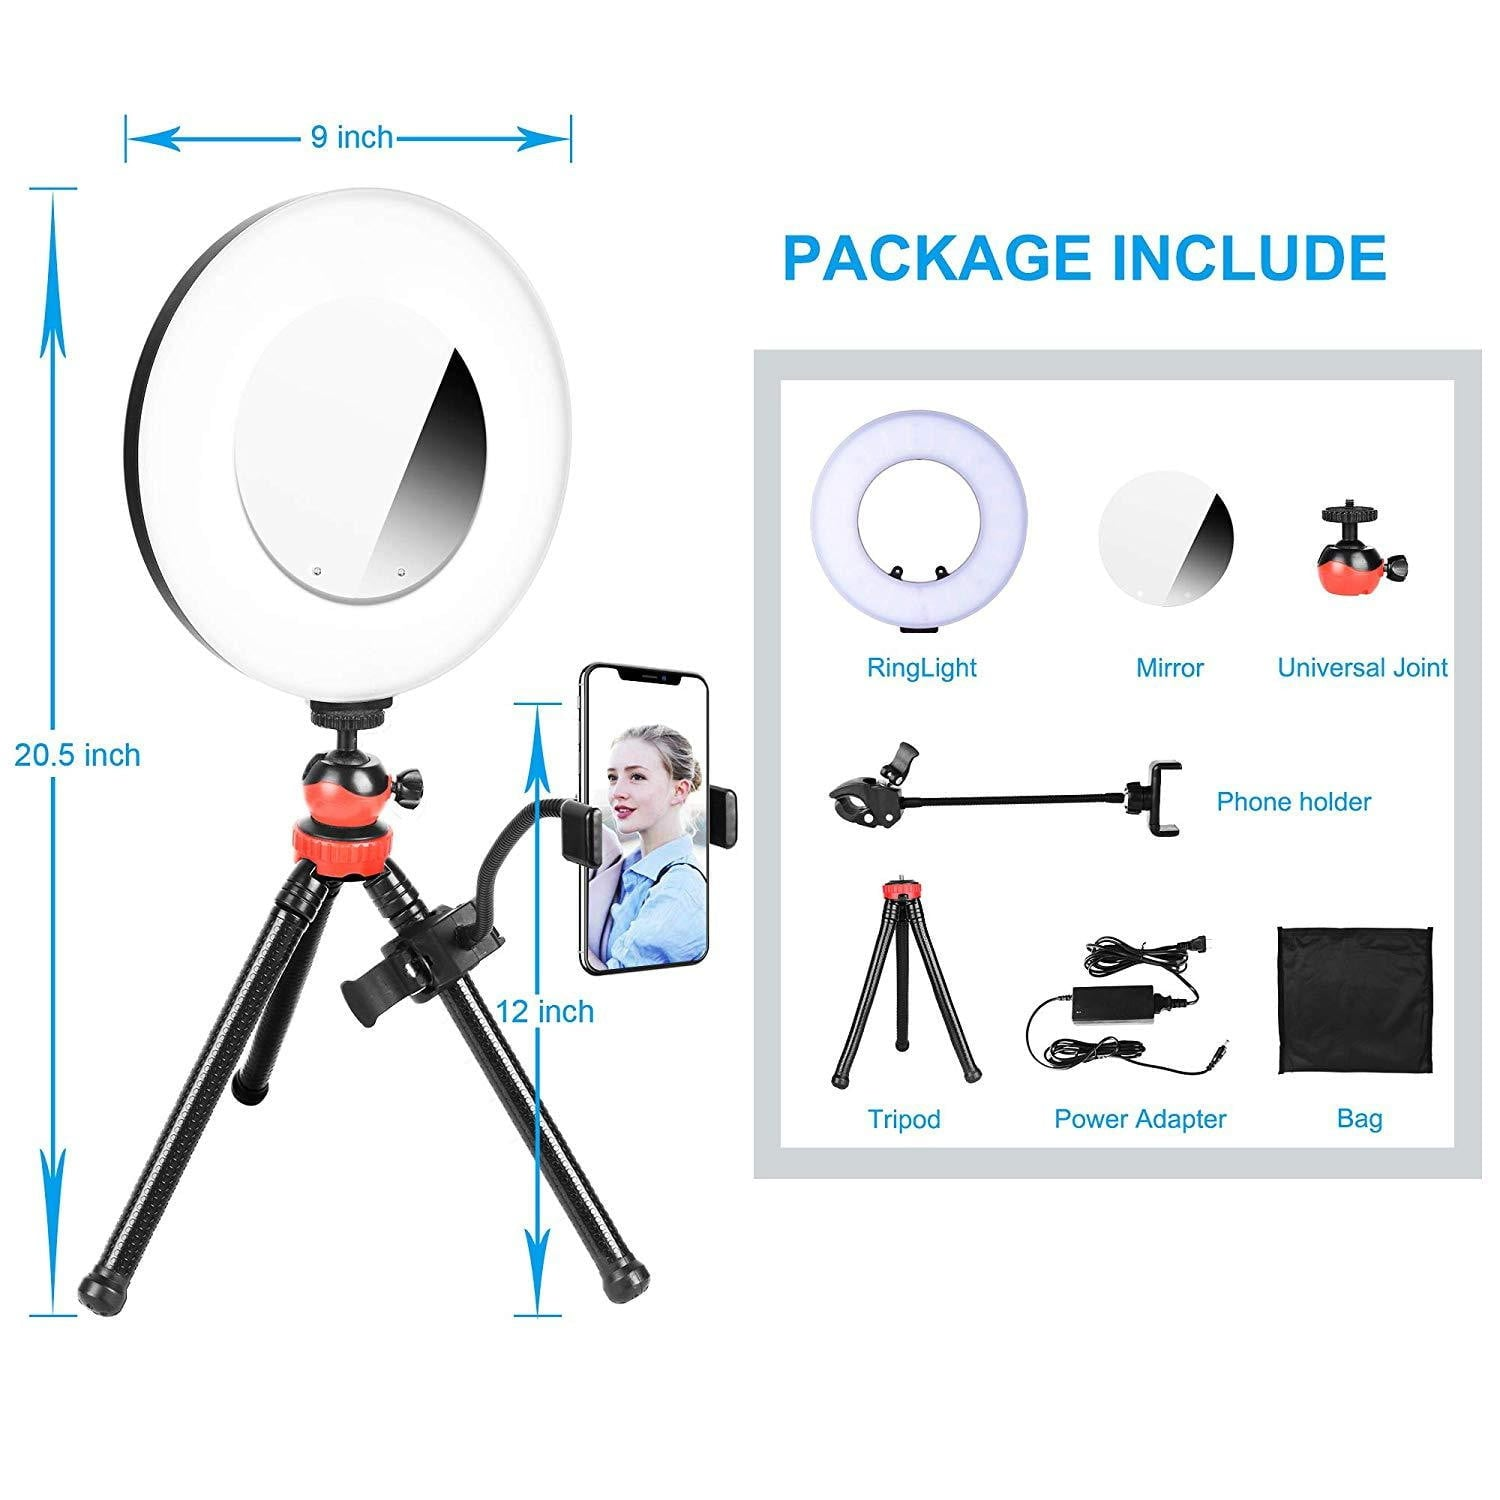 Emart 9 inch LED Ring Light with Tabletop Tripod - EMART8